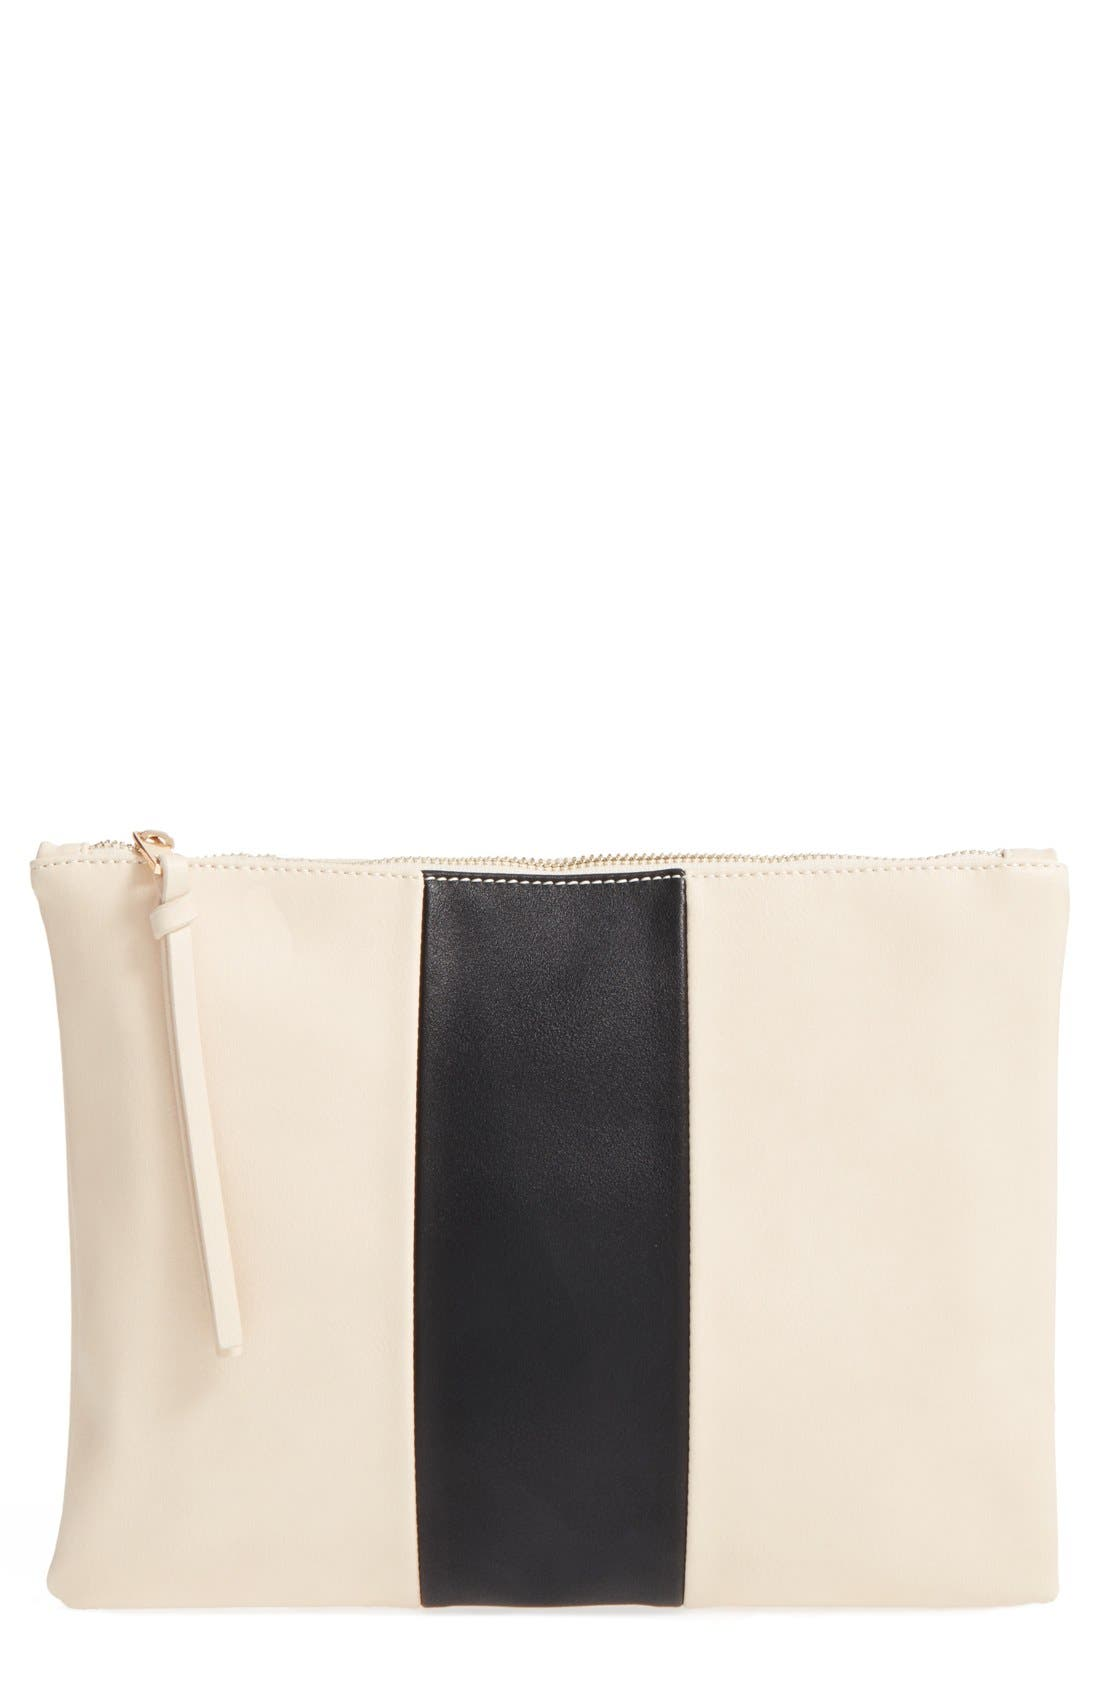 Alternate Image 1 Selected - Sole Society 'Radcliffe' Faux Leather Clutch